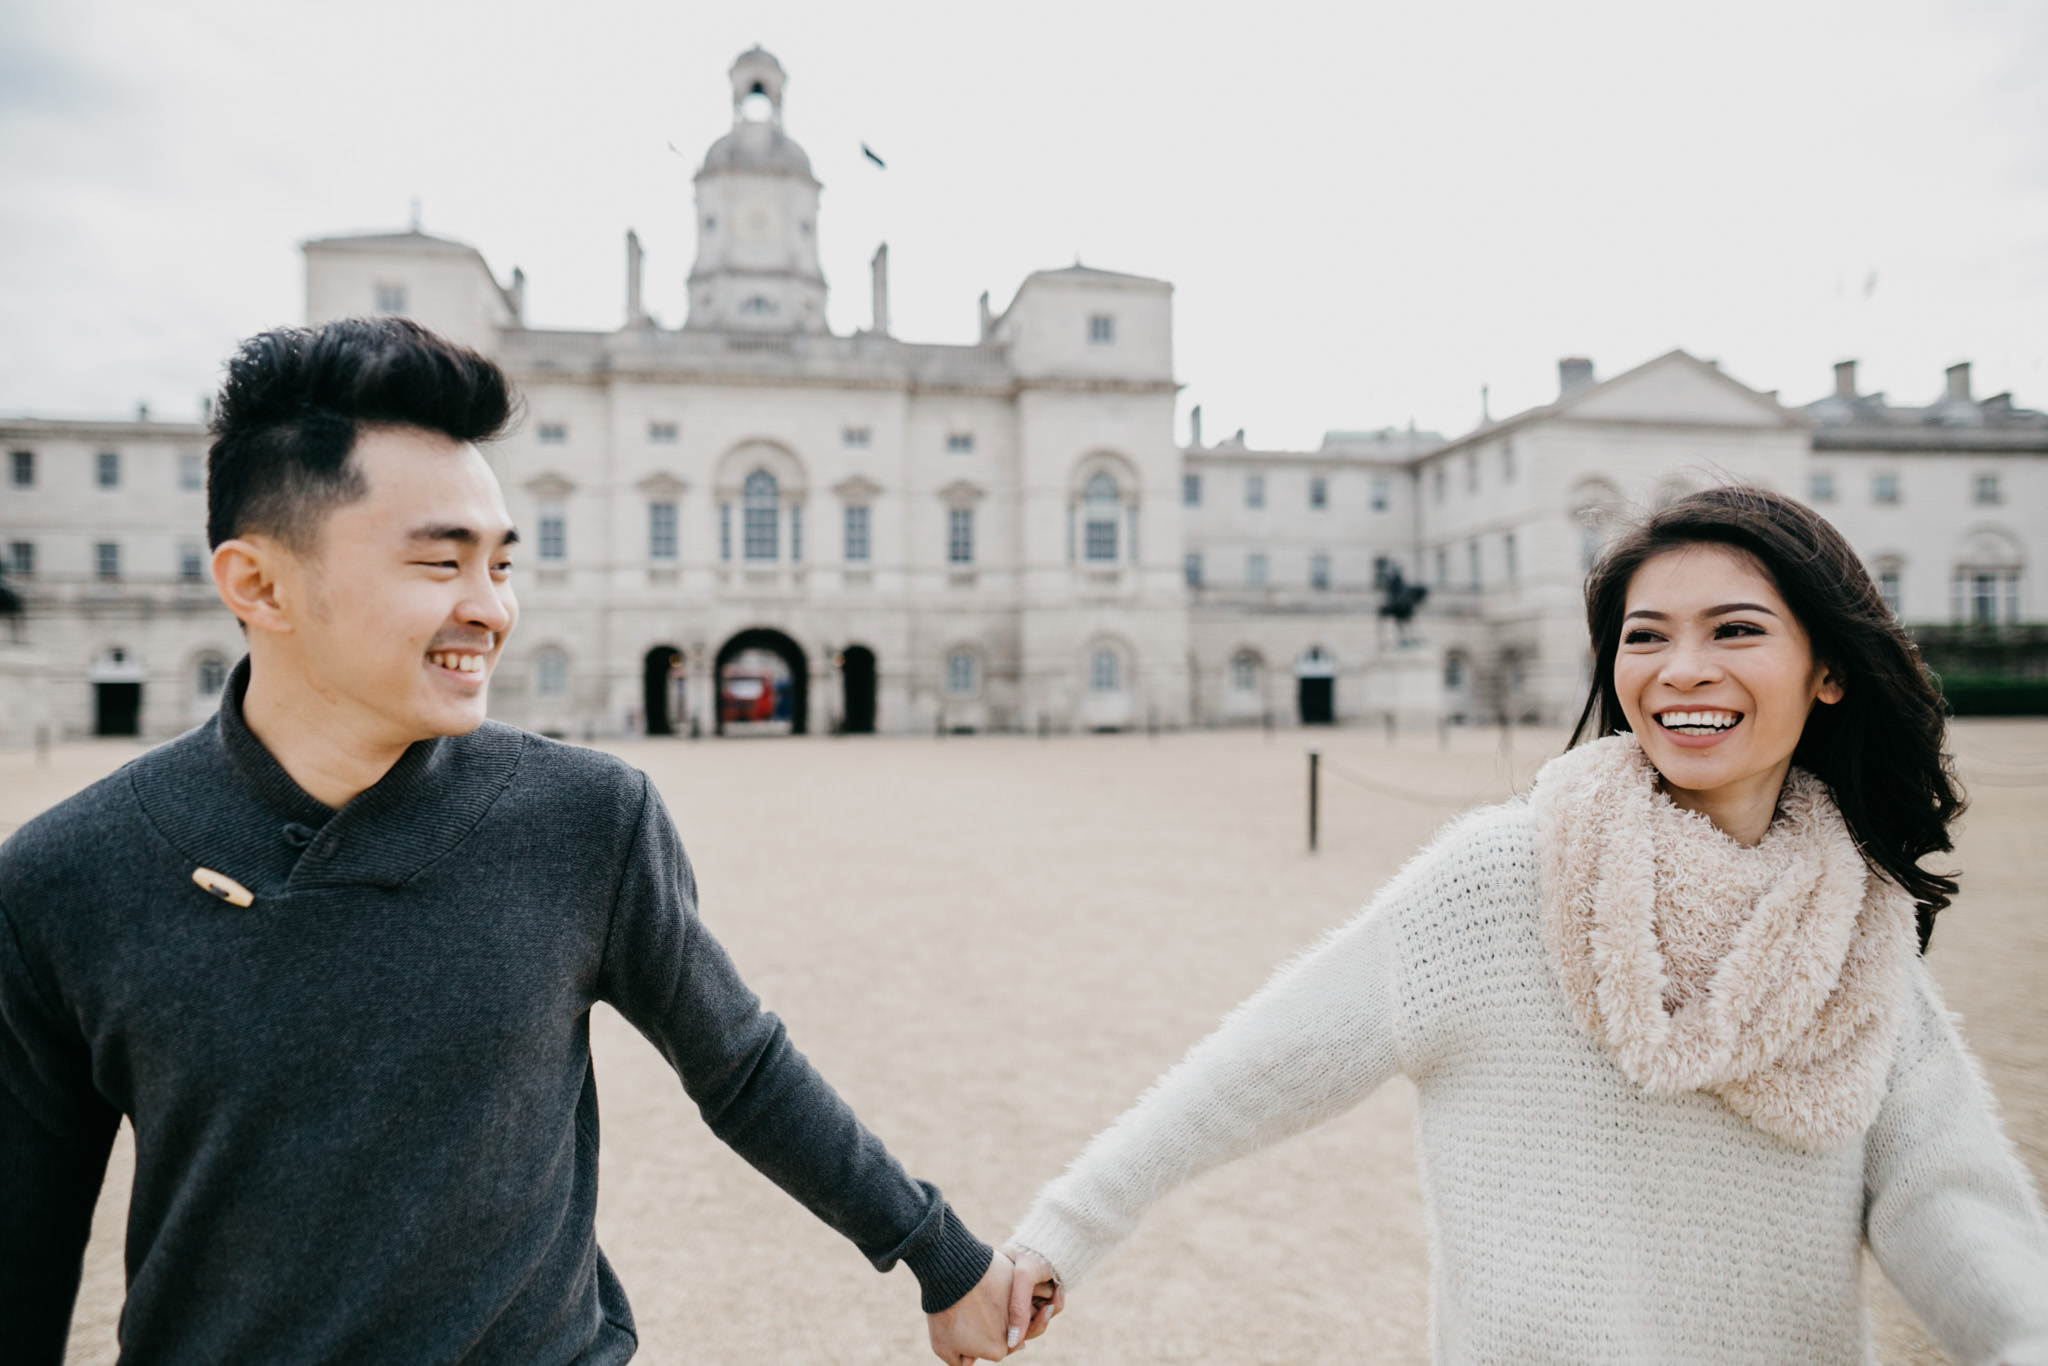 horse guards pre wedding shoot and holiday photo shoot in london